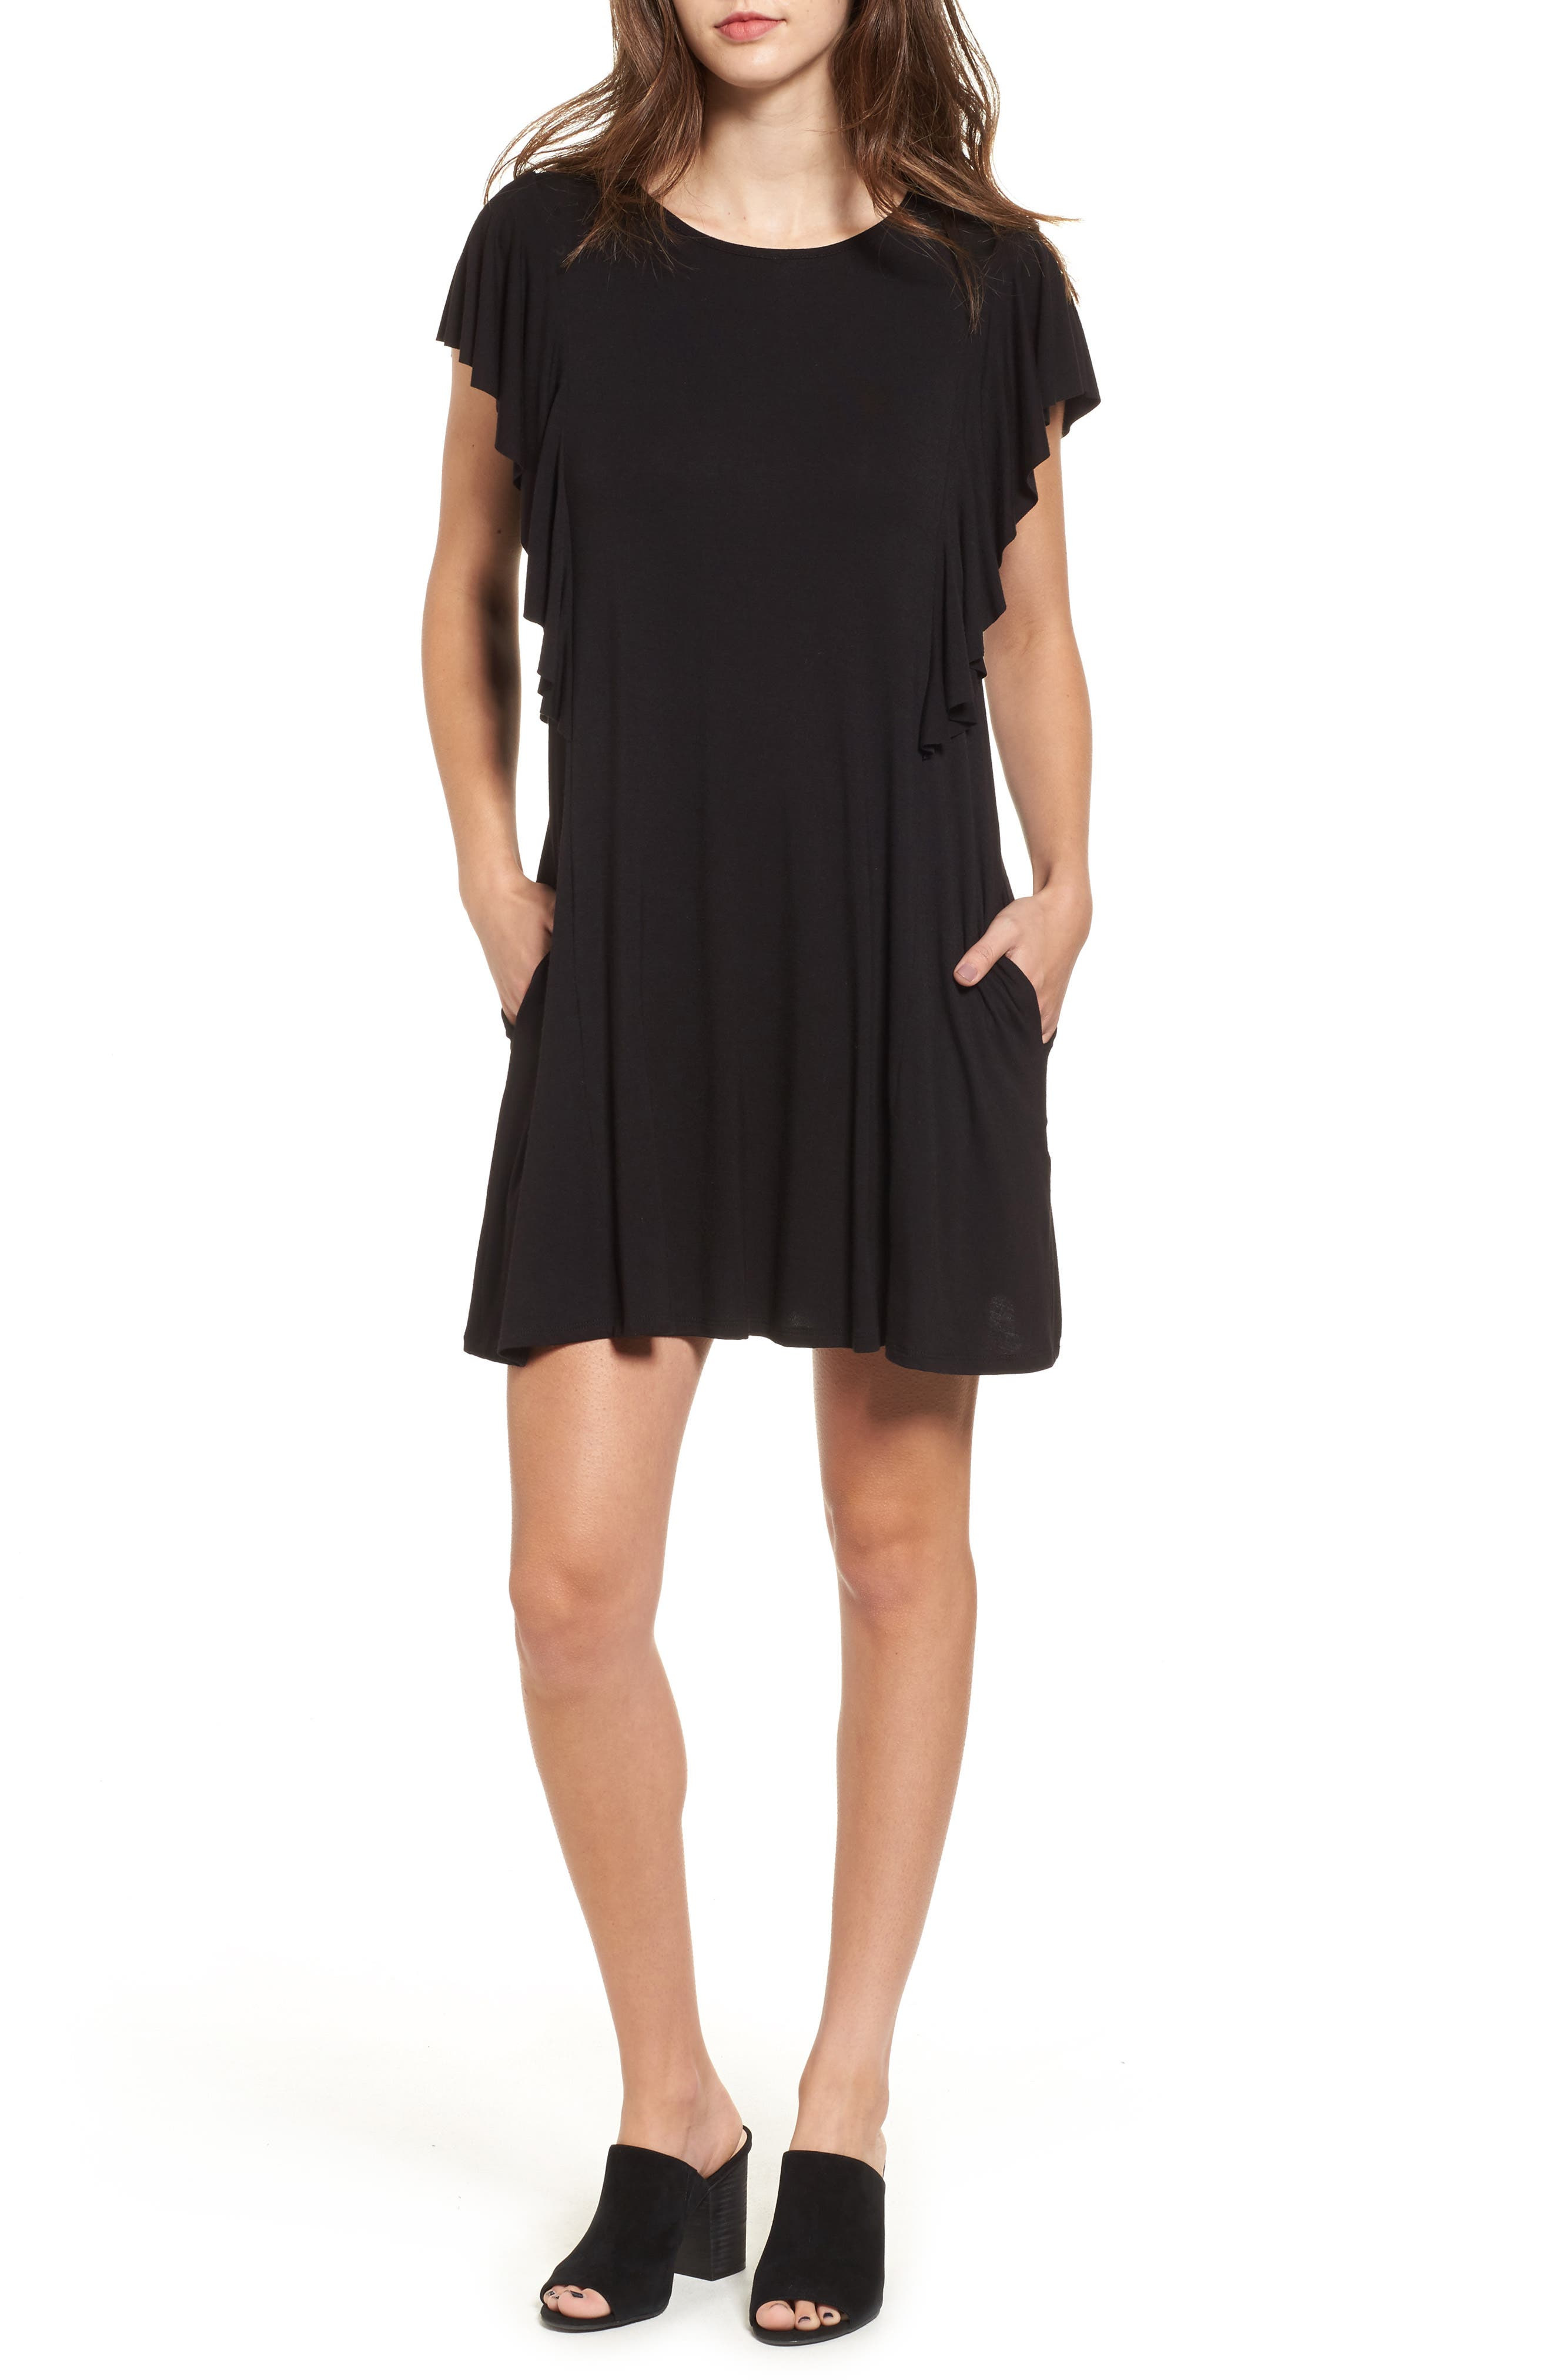 SOCIALITE, Ruffle Sleeve T-Shirt Dress, Main thumbnail 1, color, 001